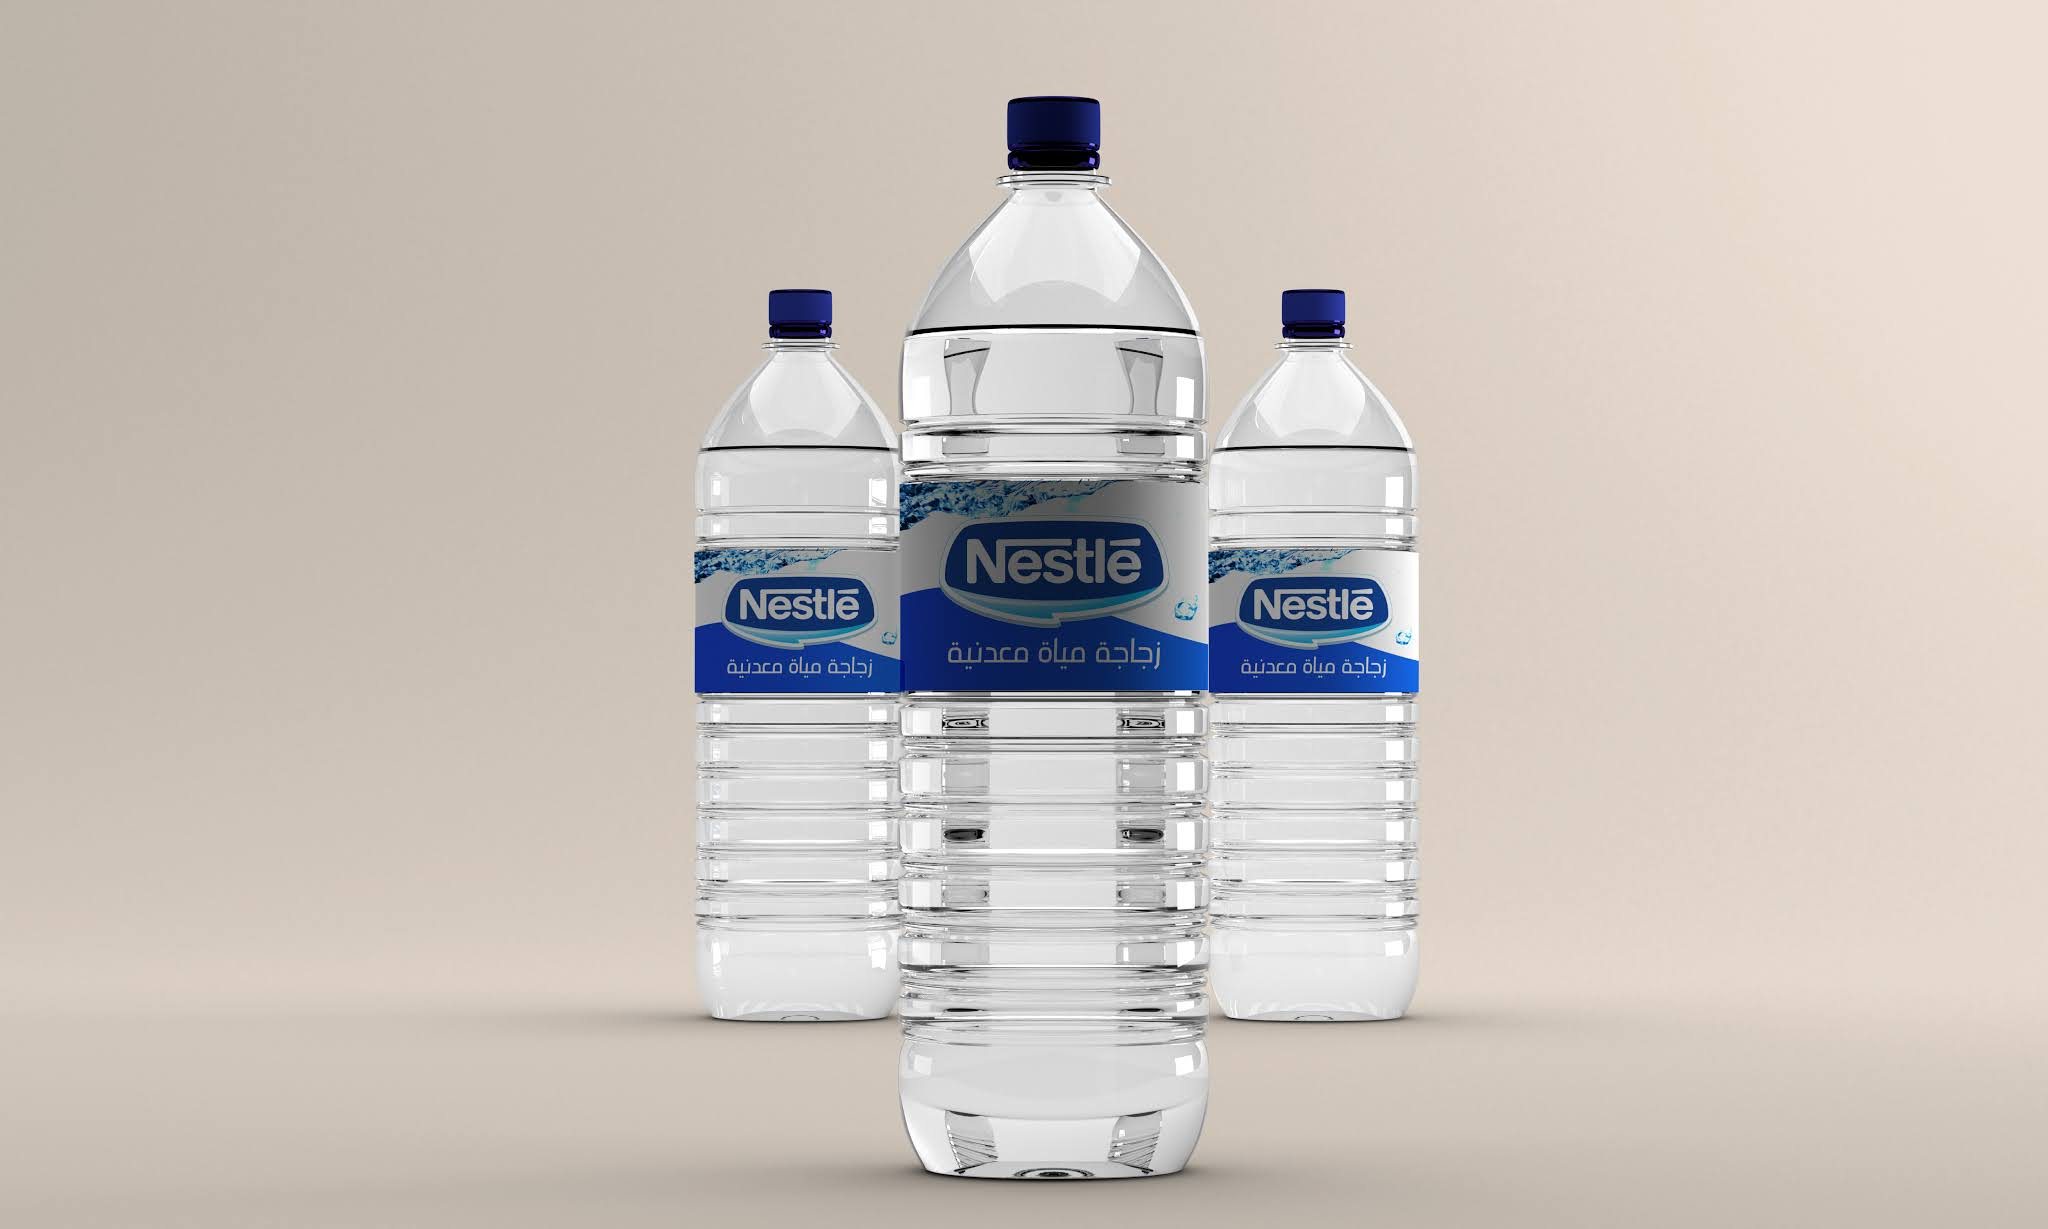 Download a mock up of water bottles to view product design